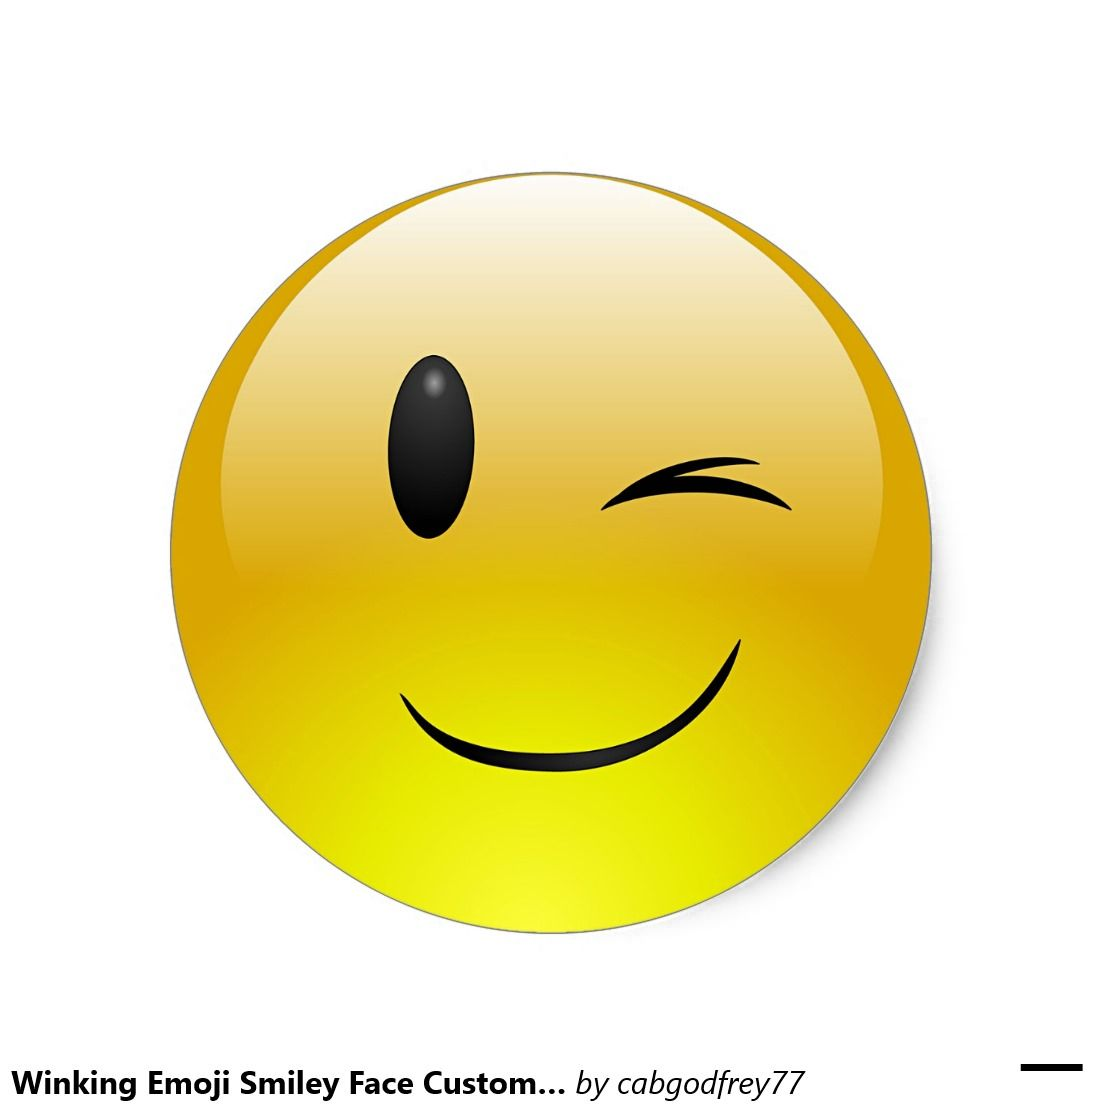 Winking Emoji Smiley Face Custom Sticker Winking Emoji Funny Emoji Faces Emoji Tattoo